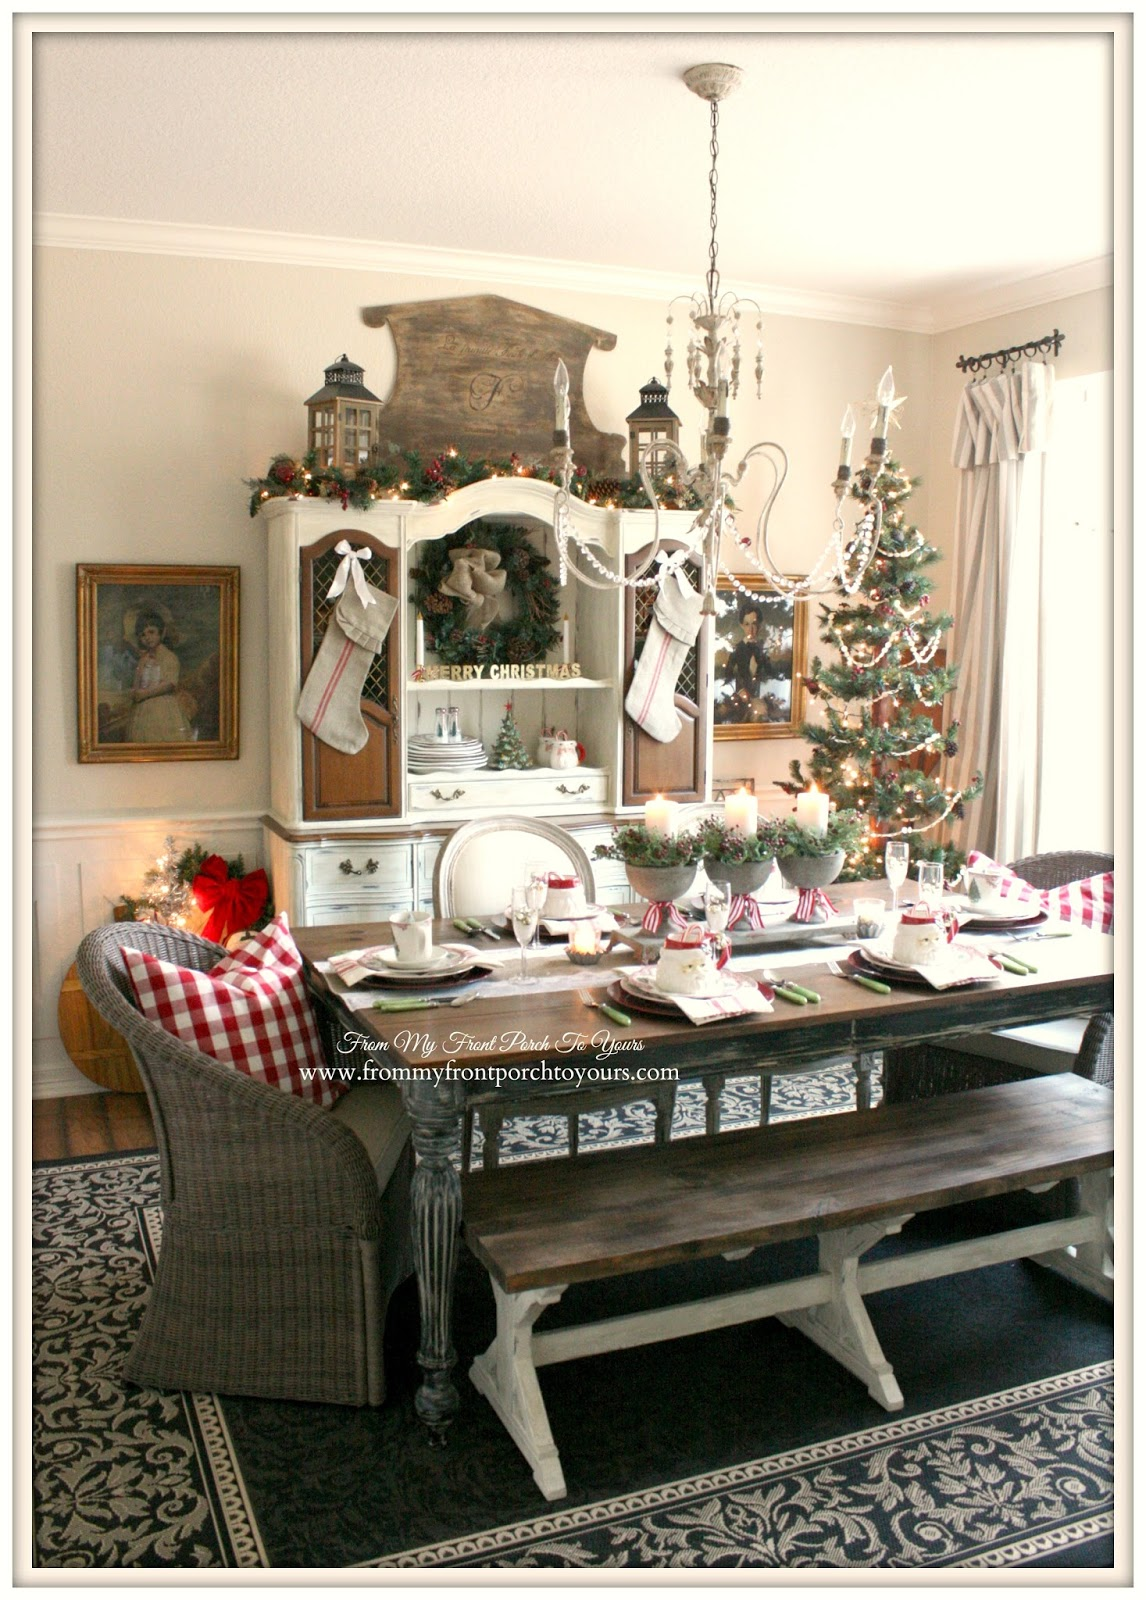 French Farmhouse Vintage Christmas Dining Room- From My Front Porch To Yours